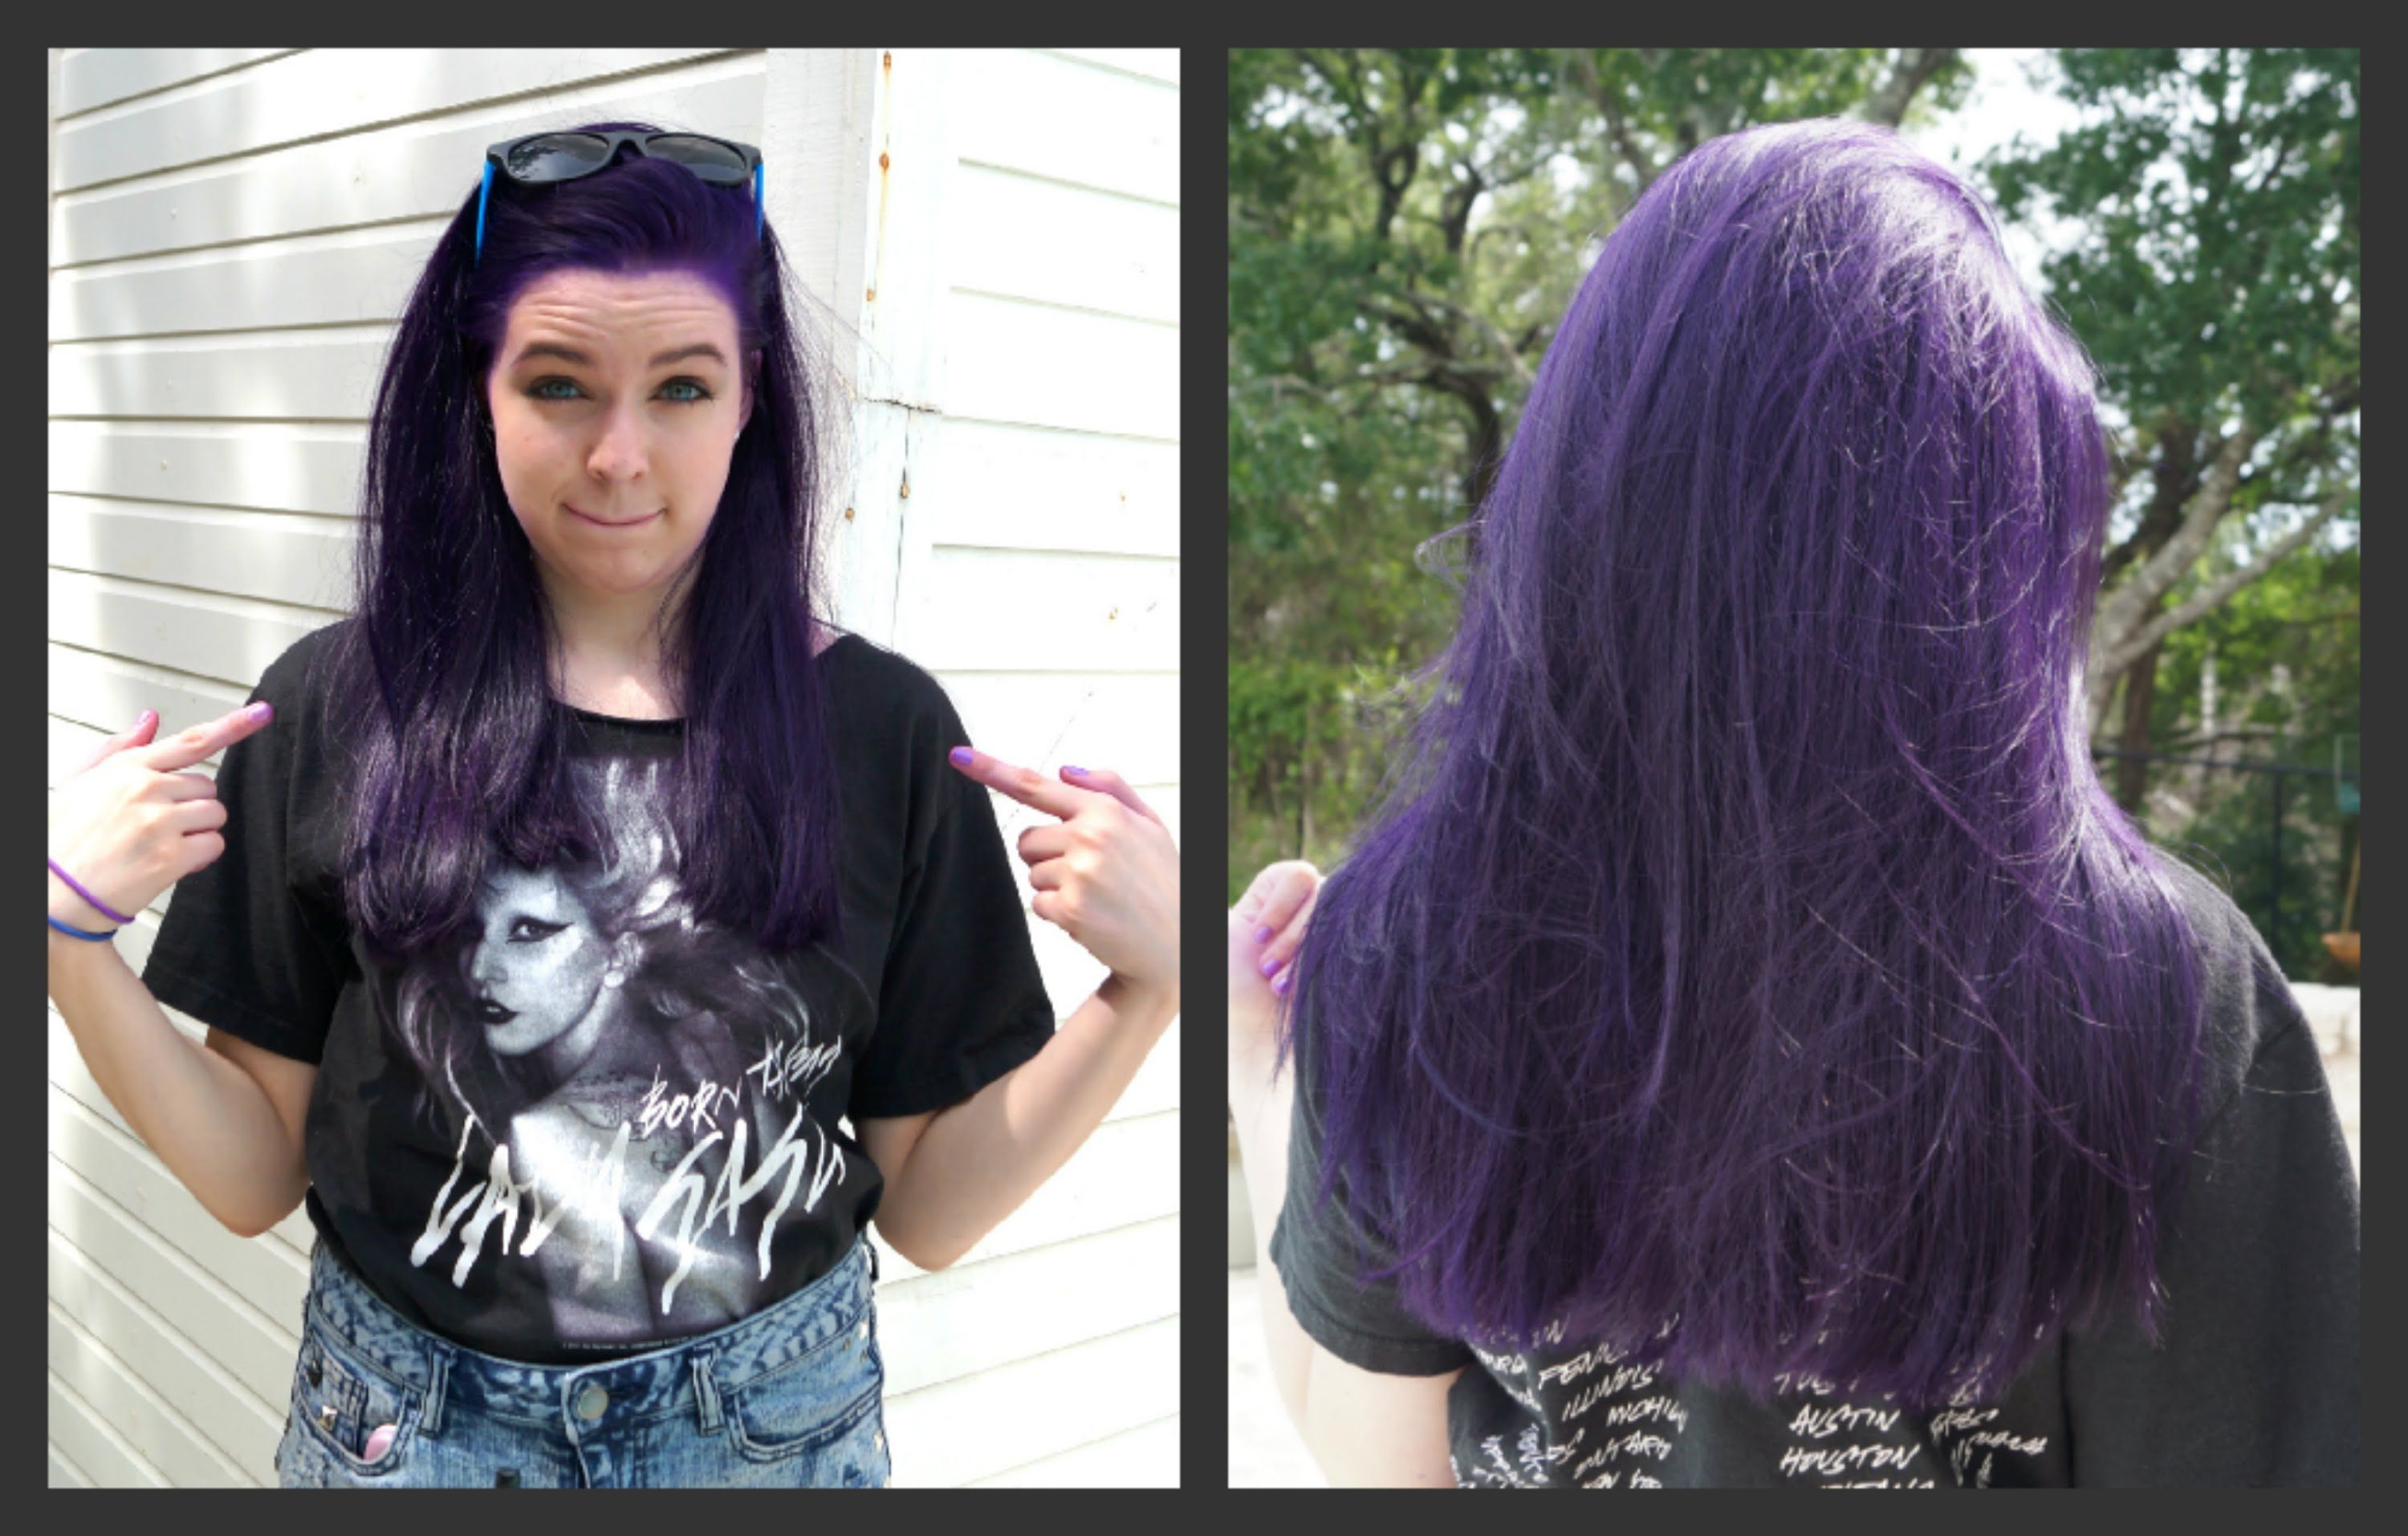 How To Dye Your Hair Purple No Bleach Colores De Pelo Color De Pelo Color Del Pelo